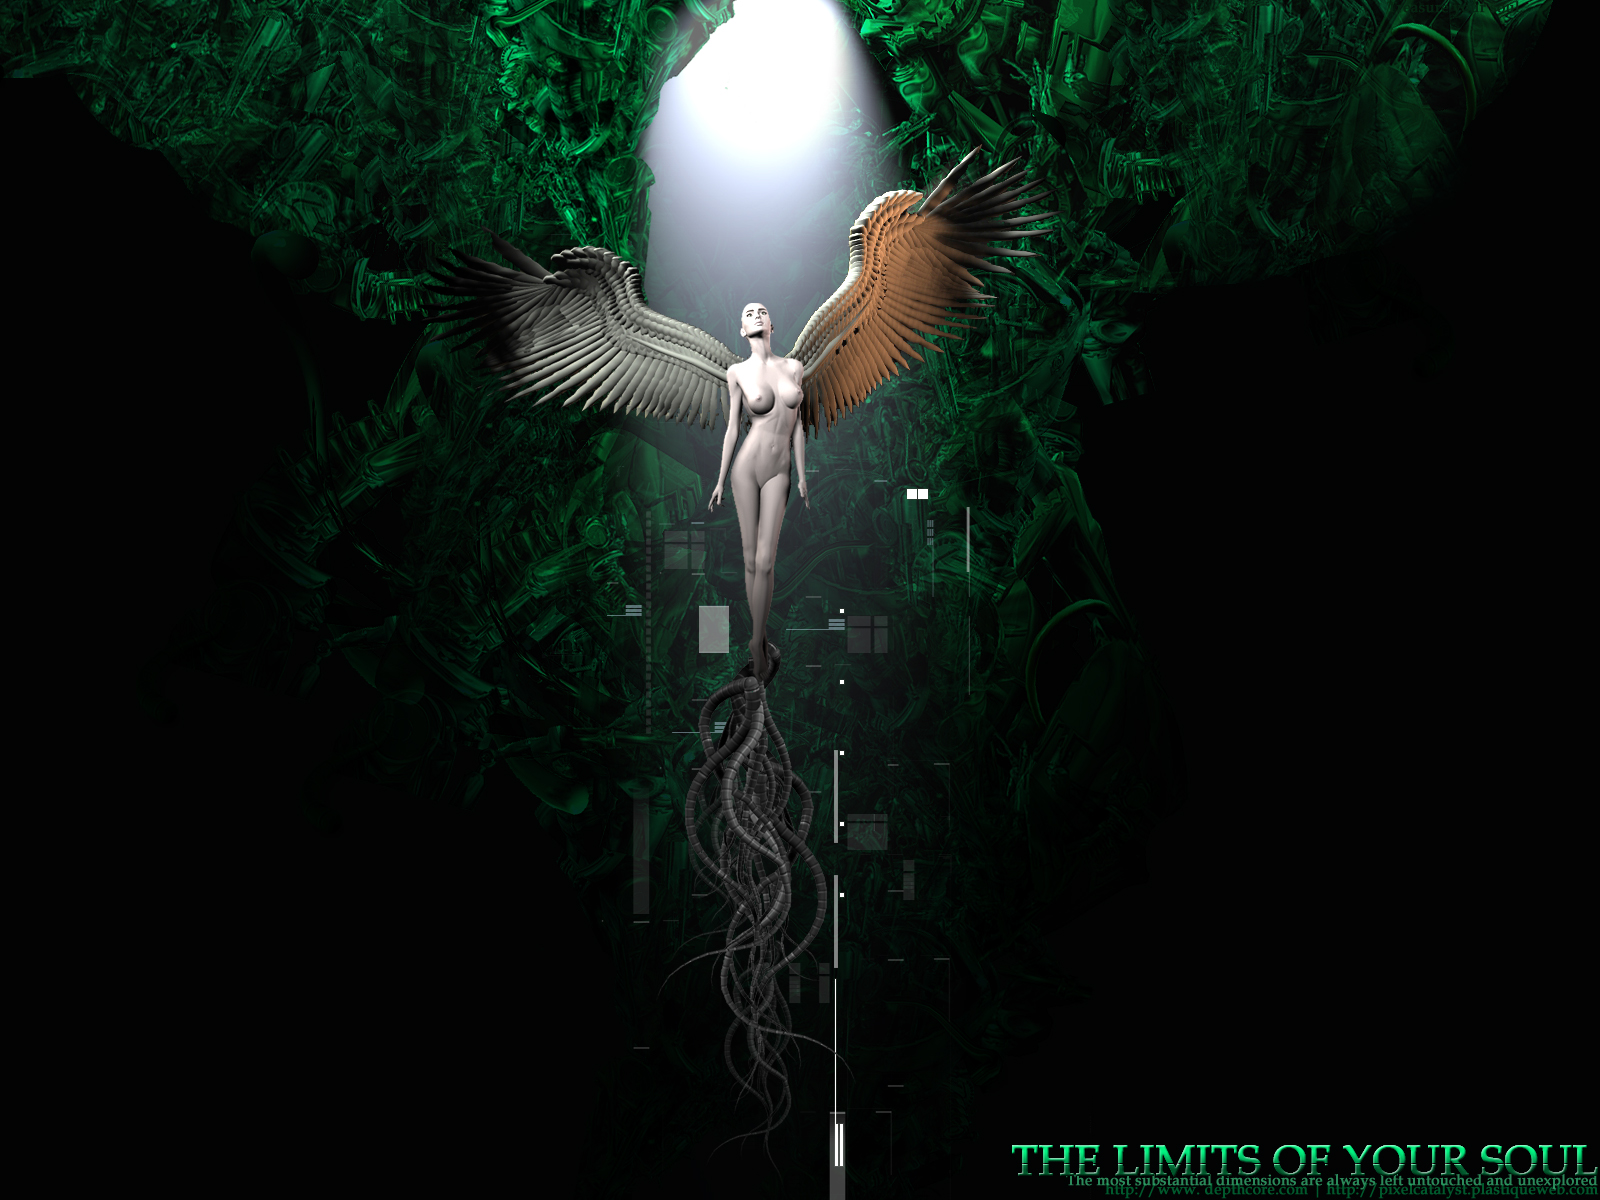 The Limits of Your Soul by <br />